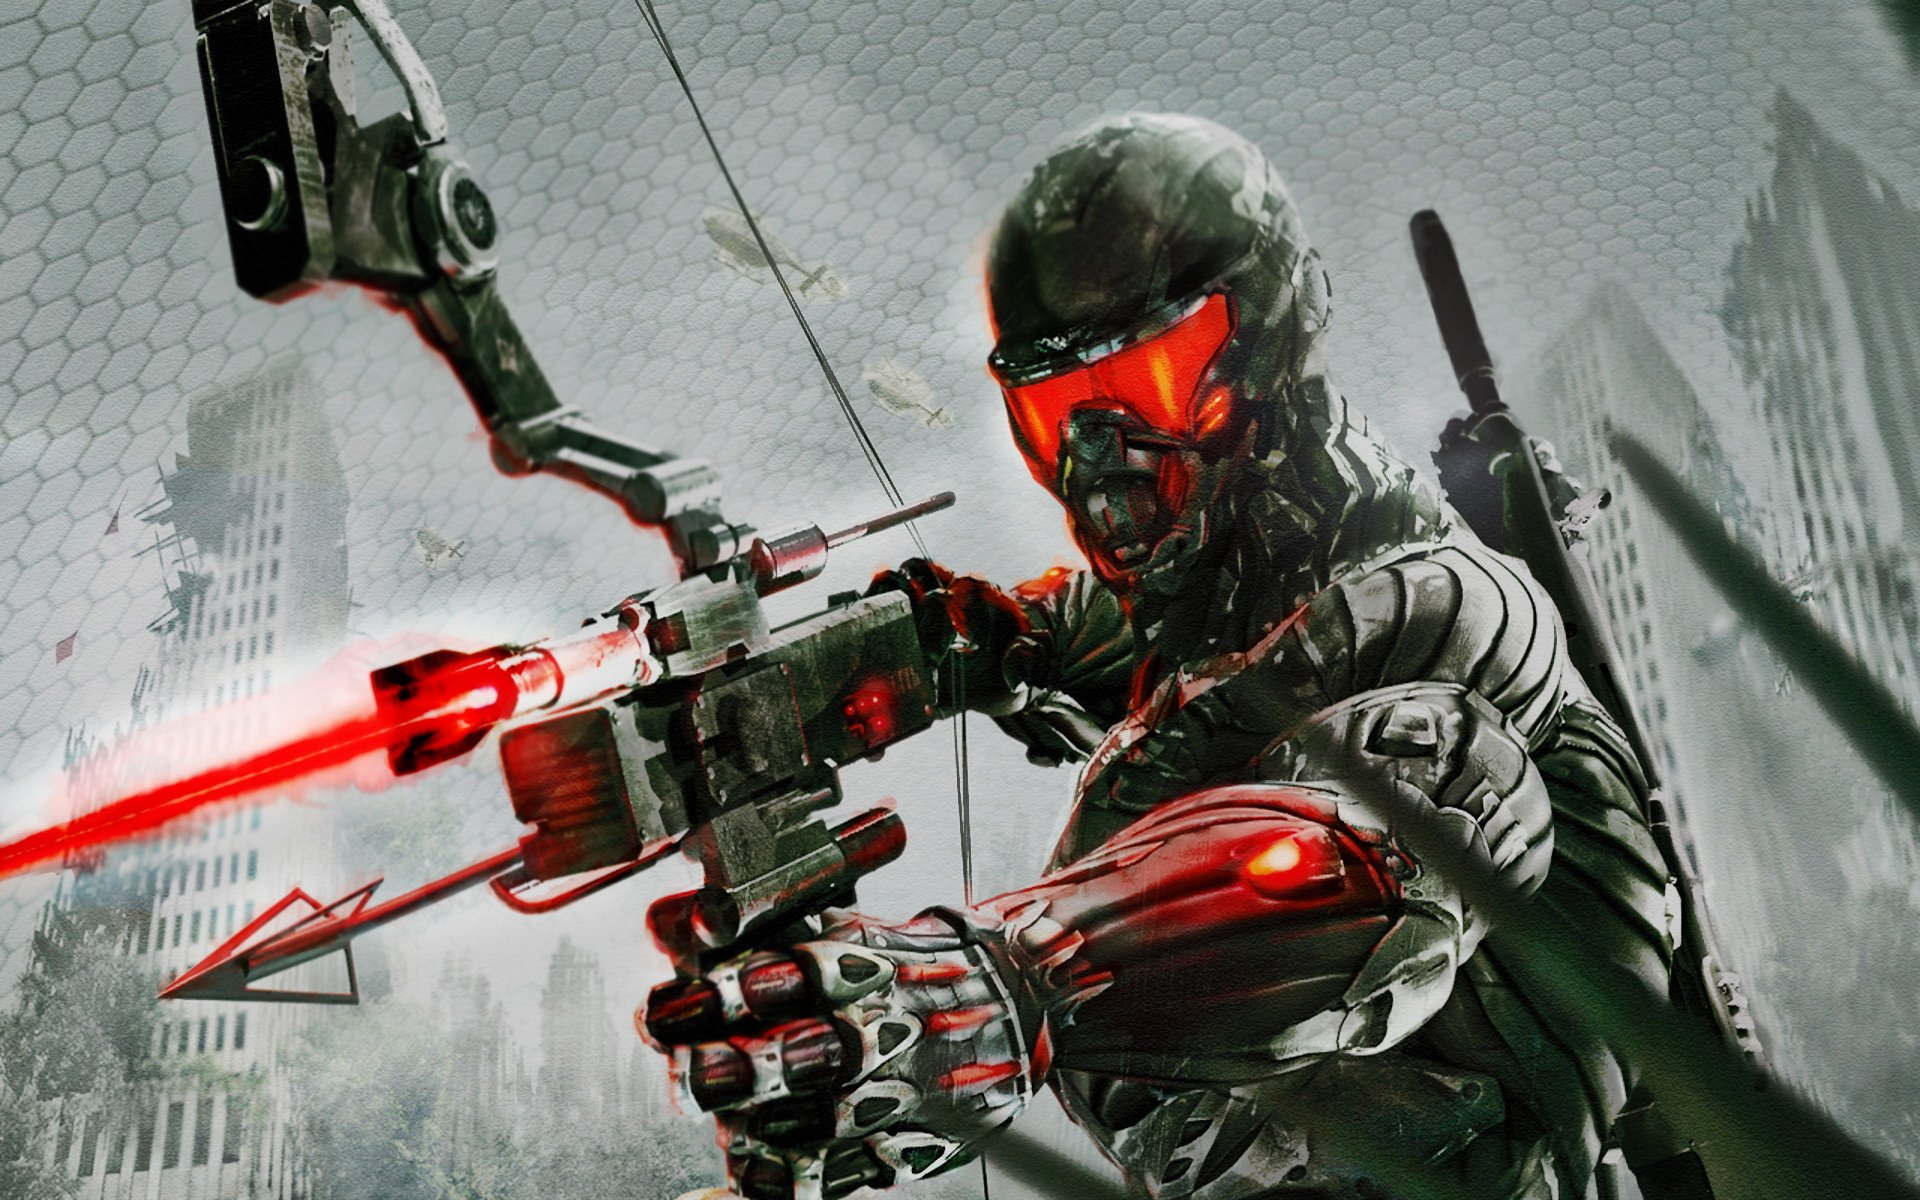 Action Game Hd Wallpaper Collection: Crysis 3 HD Wallpaper